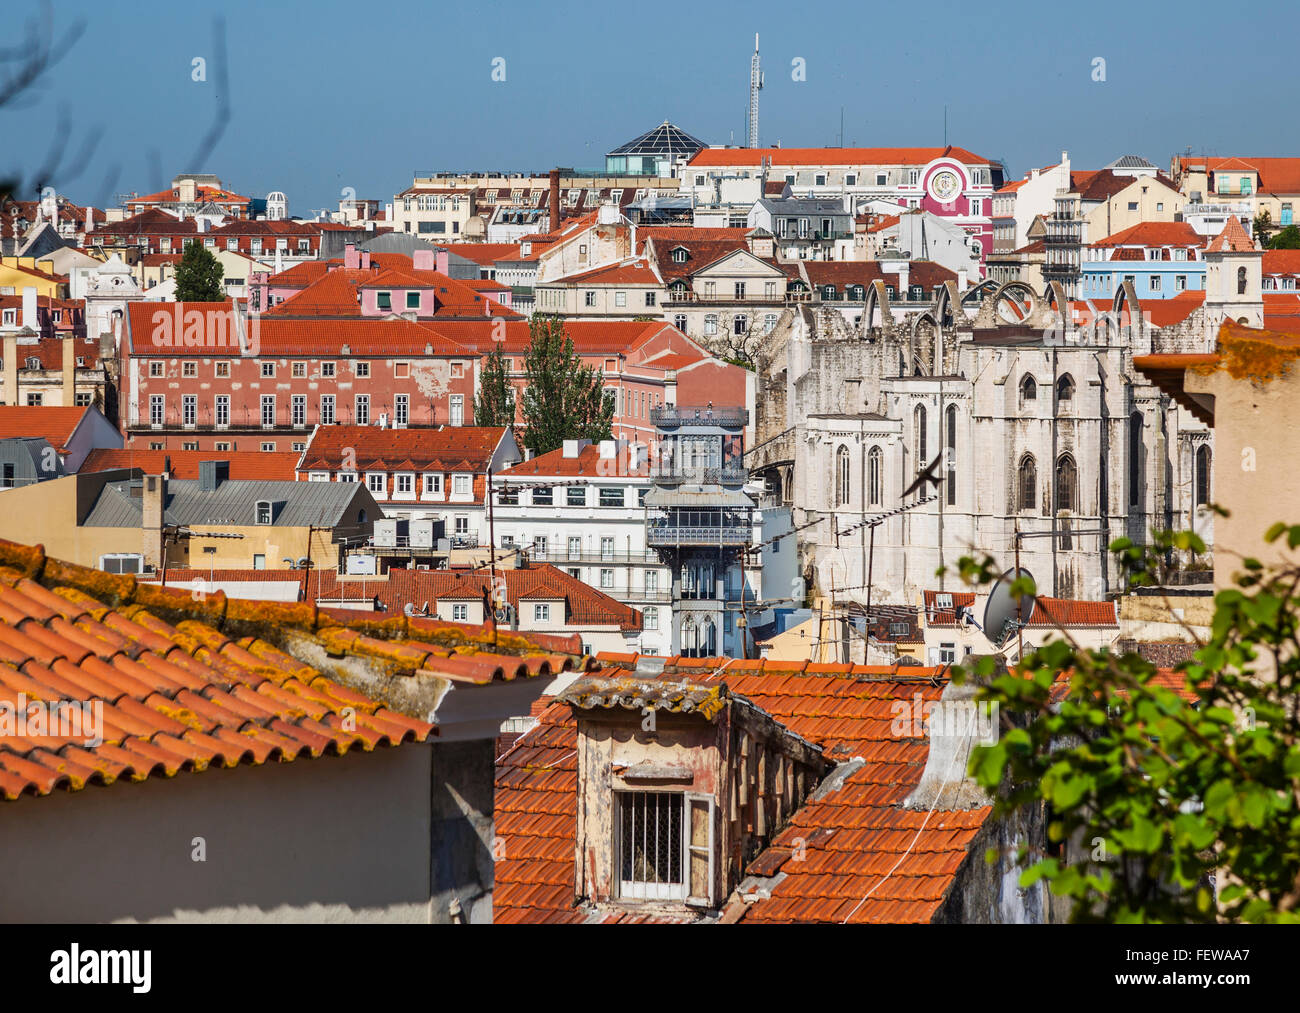 Portugal, Lisbon, view  over the roofs of the Baixa neighborhood towards the Santa Justa Lift and the ruins of the - Stock Image